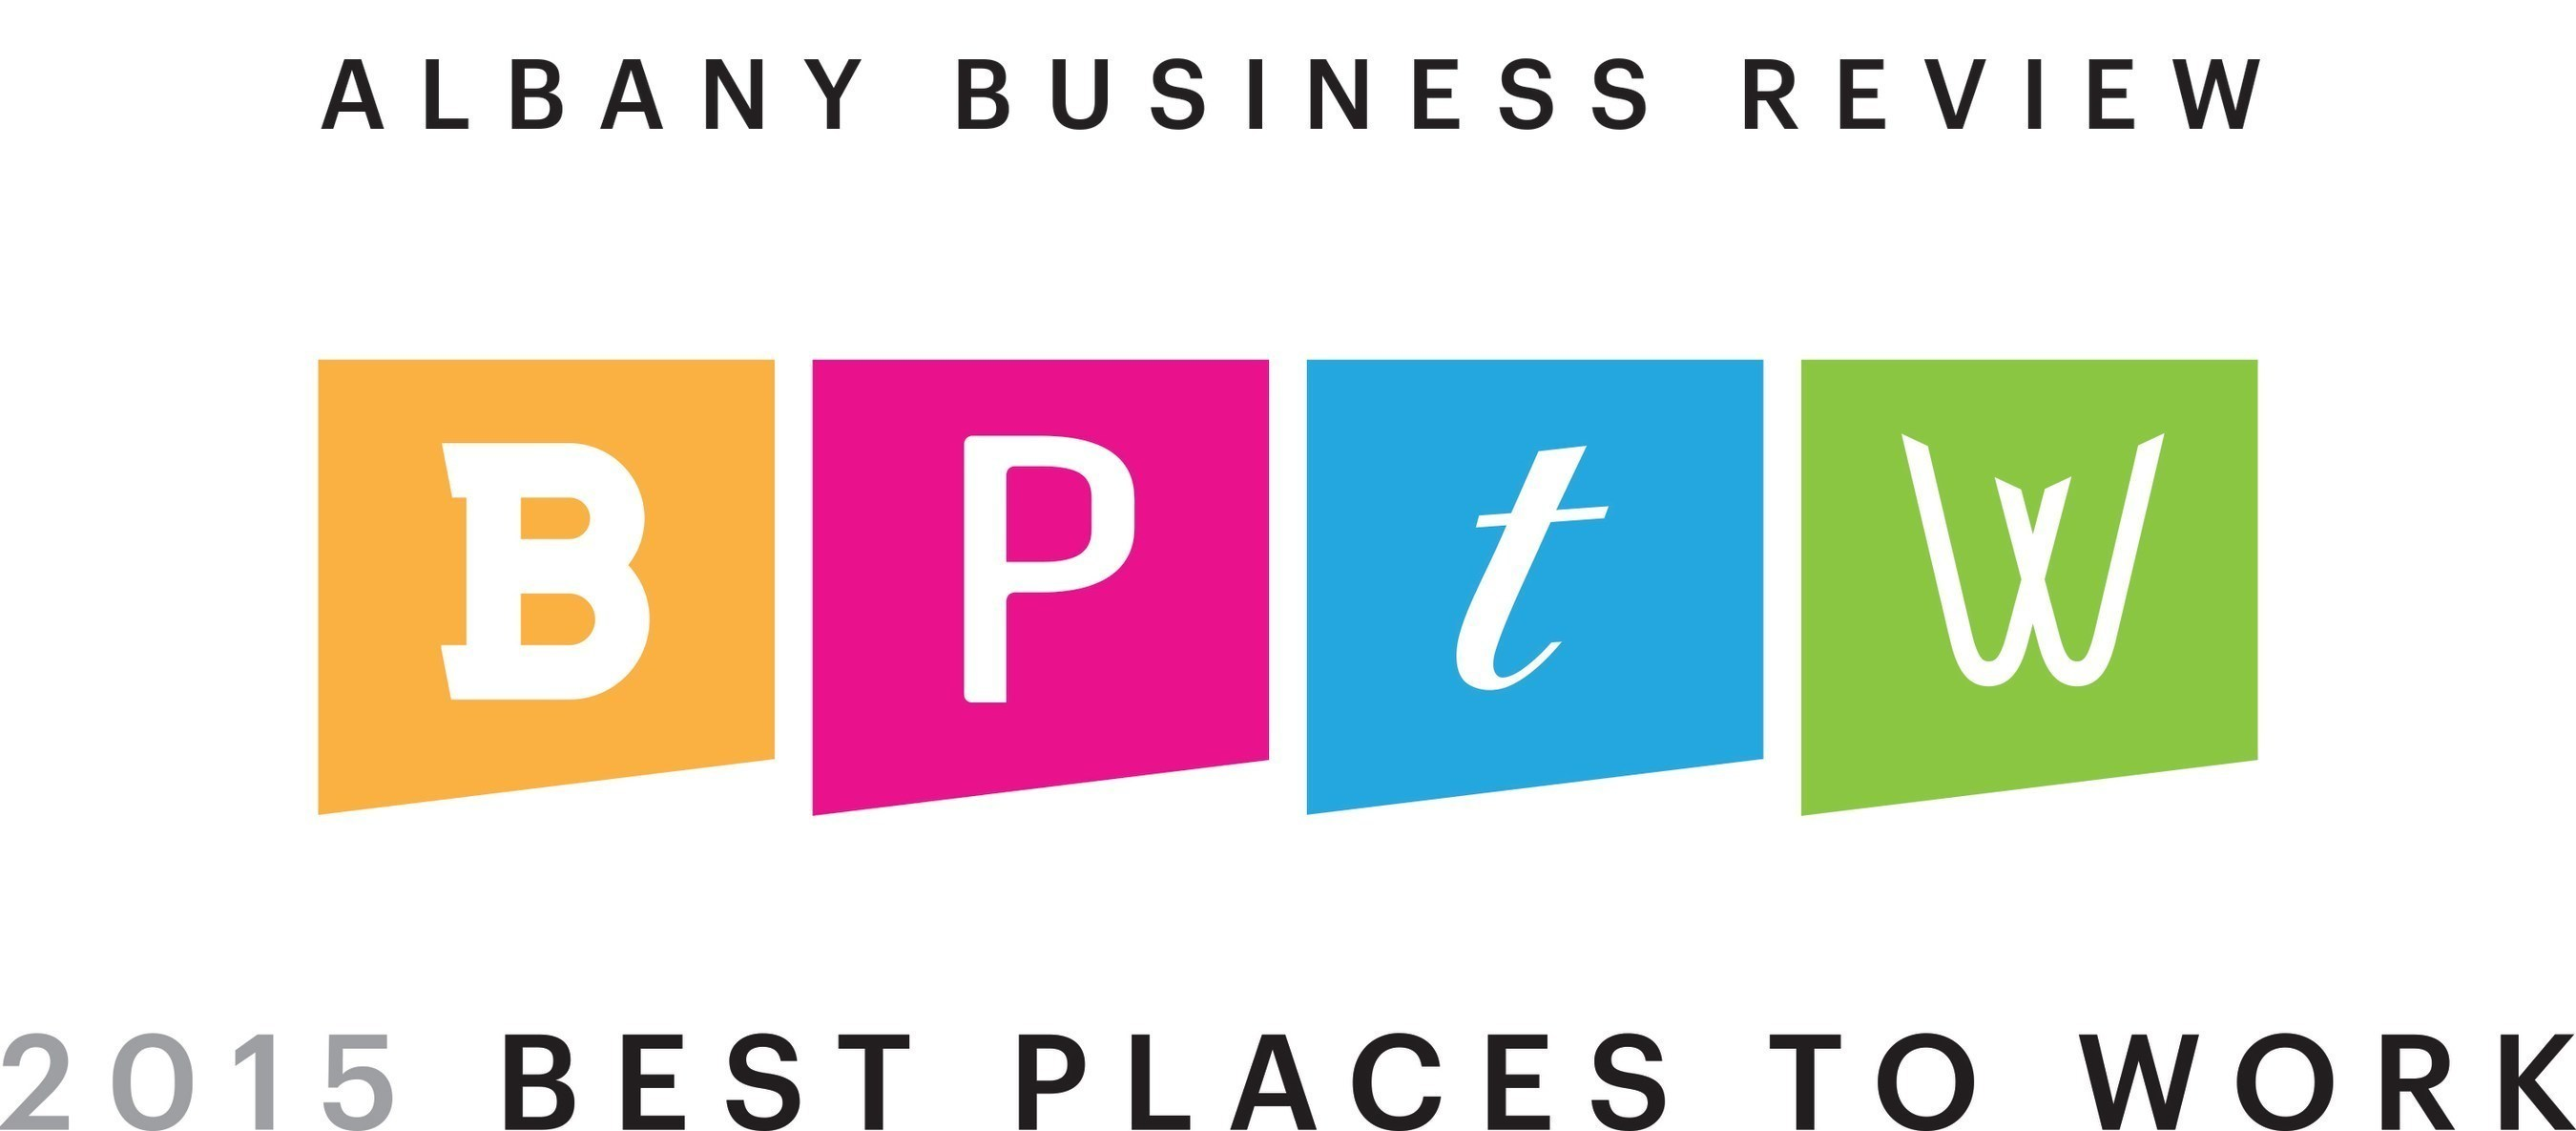 Auto/Mate Receives a 'Best Places to Work' Award from the Albany Business Review Six Years Running